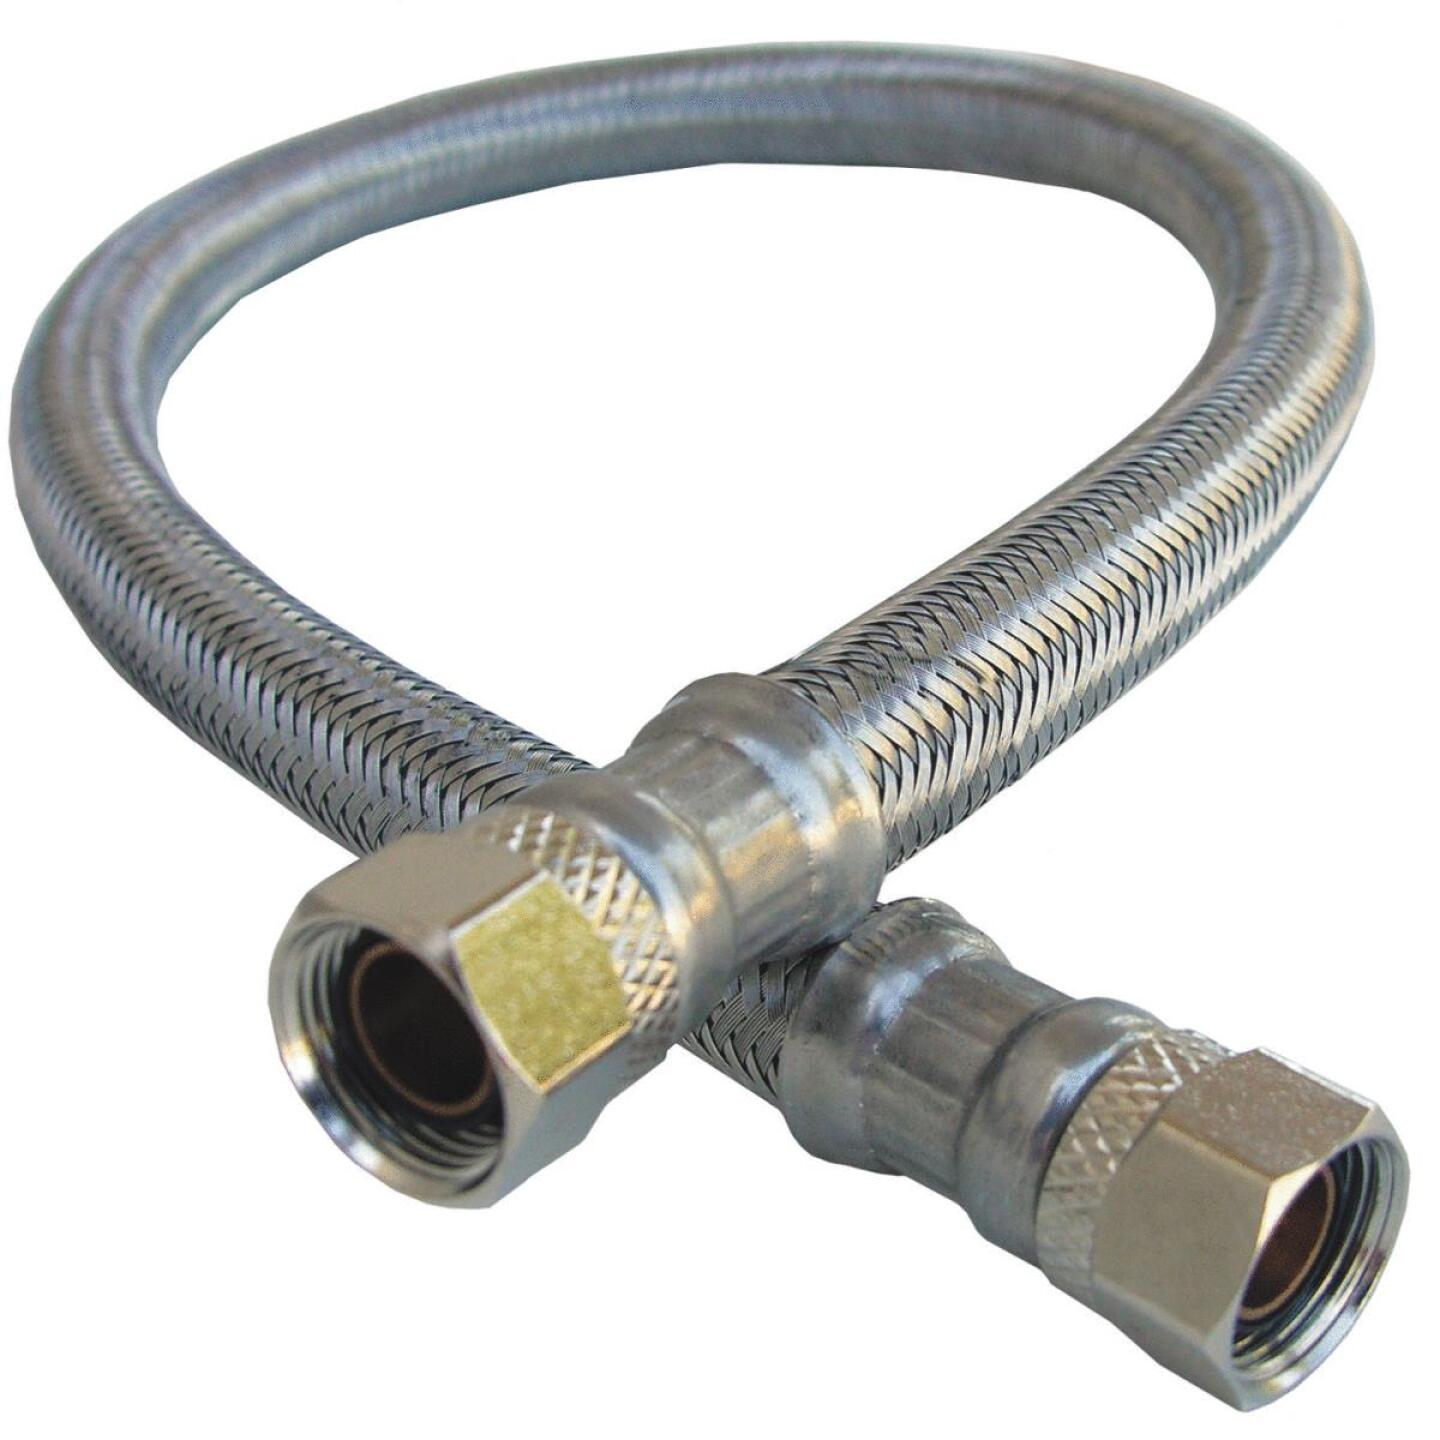 Lasco 3/8 In.C x 3/8 In.C x 20 In.L Braided Stainless Steel Flex Line Appliance Water Connector Image 1